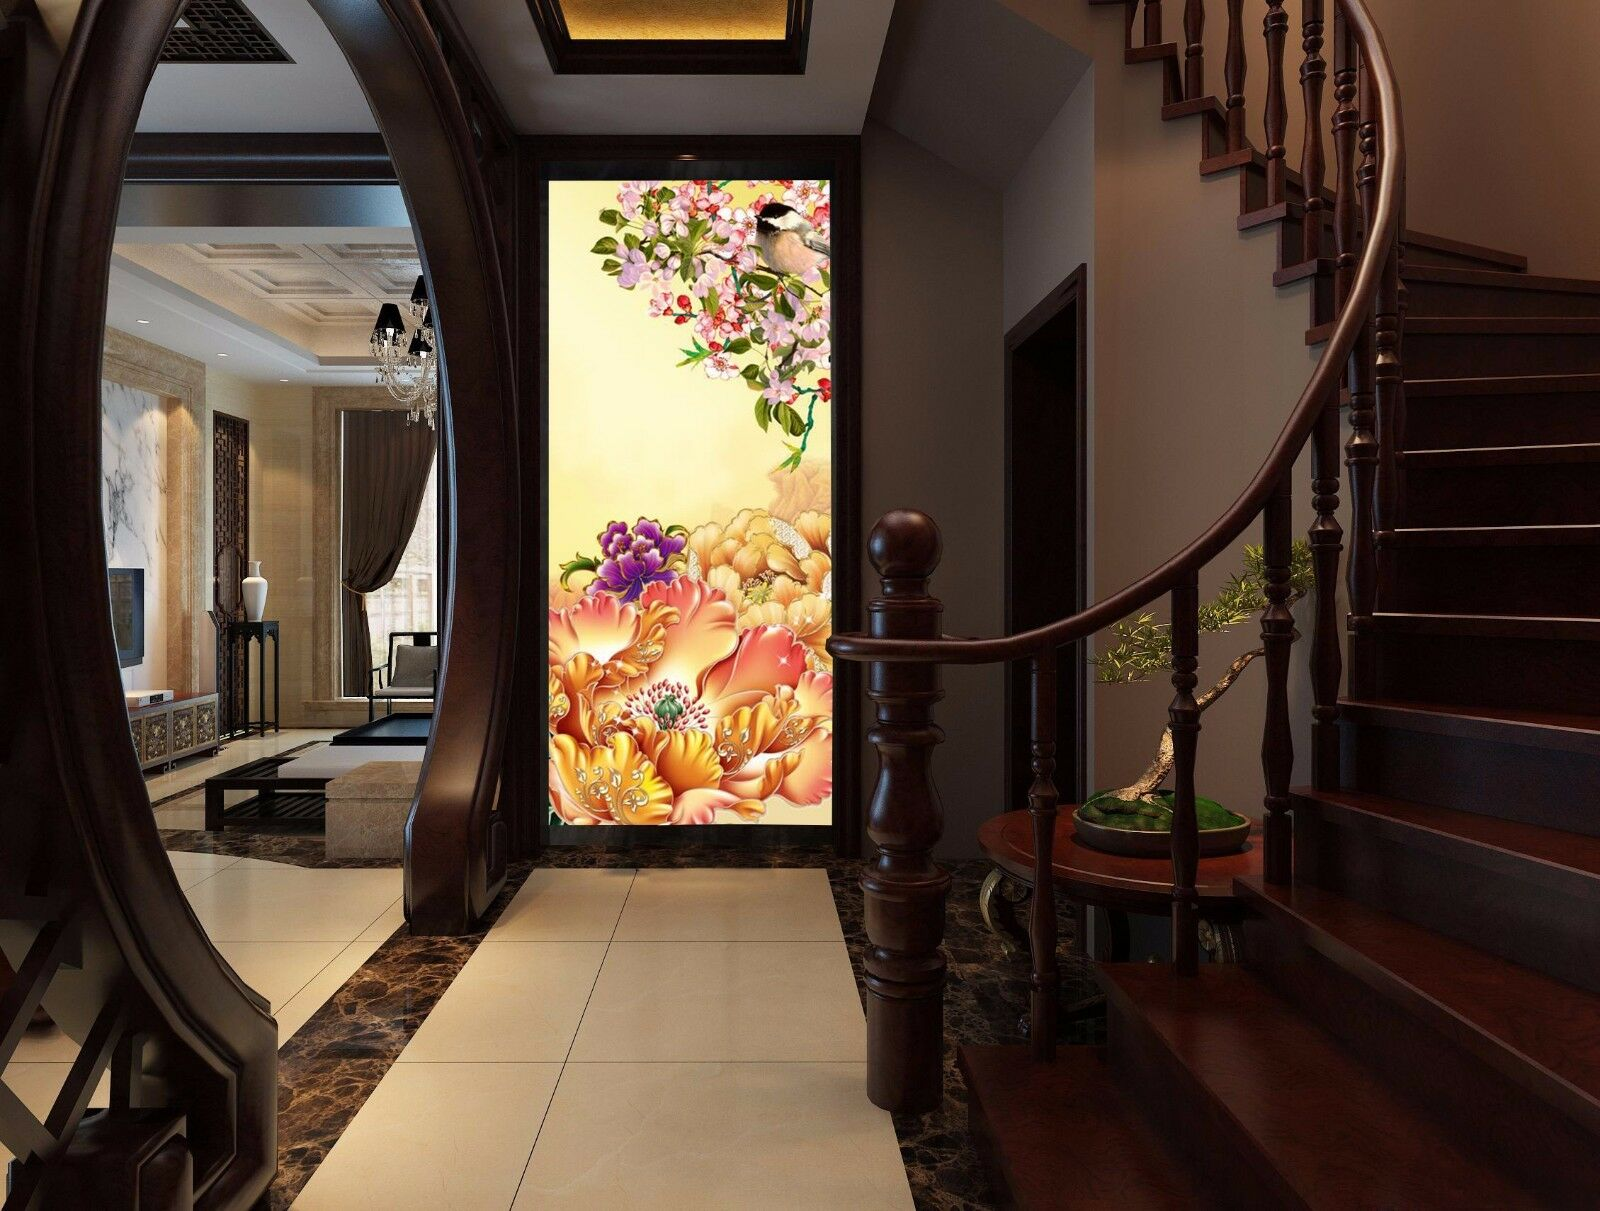 3D Flower Farbeful Large Wall Paper wall Print Decal Wall Deco Indoor wall Mural